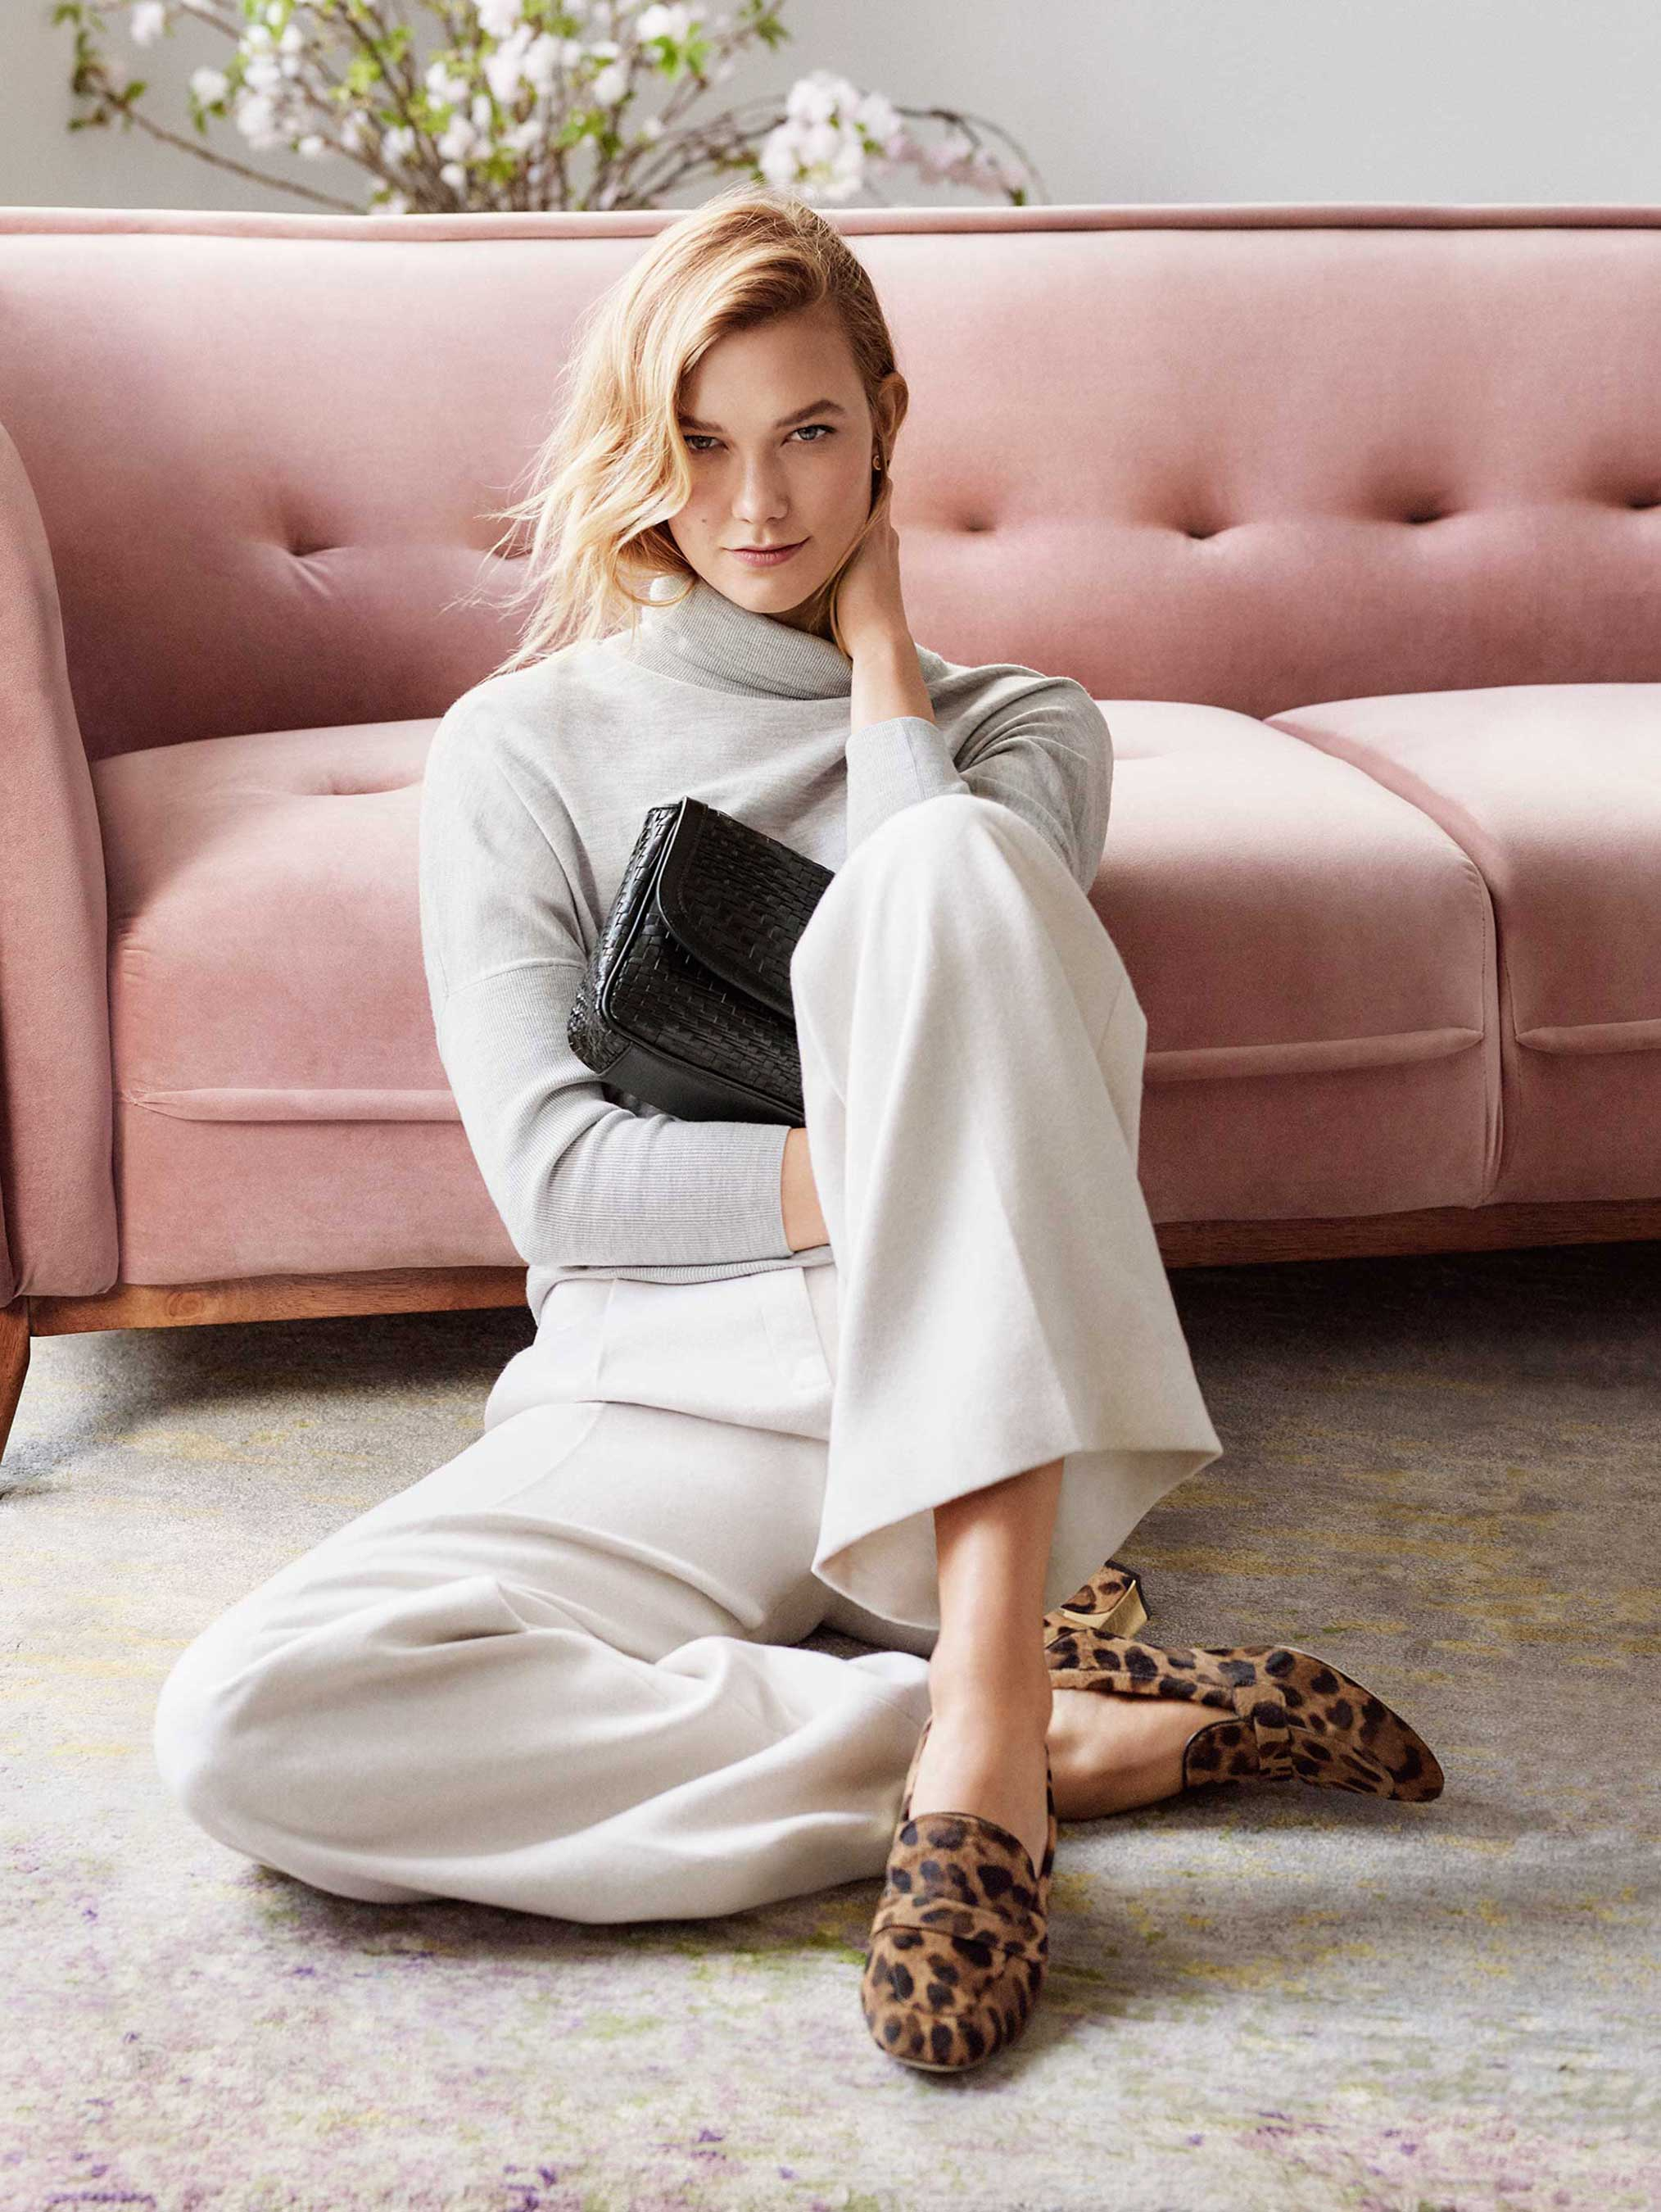 Cole Haan – Fall 2017 Extraordinary Women, Extraordinary Stories Campaign –  Karlie Kloss – Collection Loafer in Ocelot and Genevieve Clutch in Black